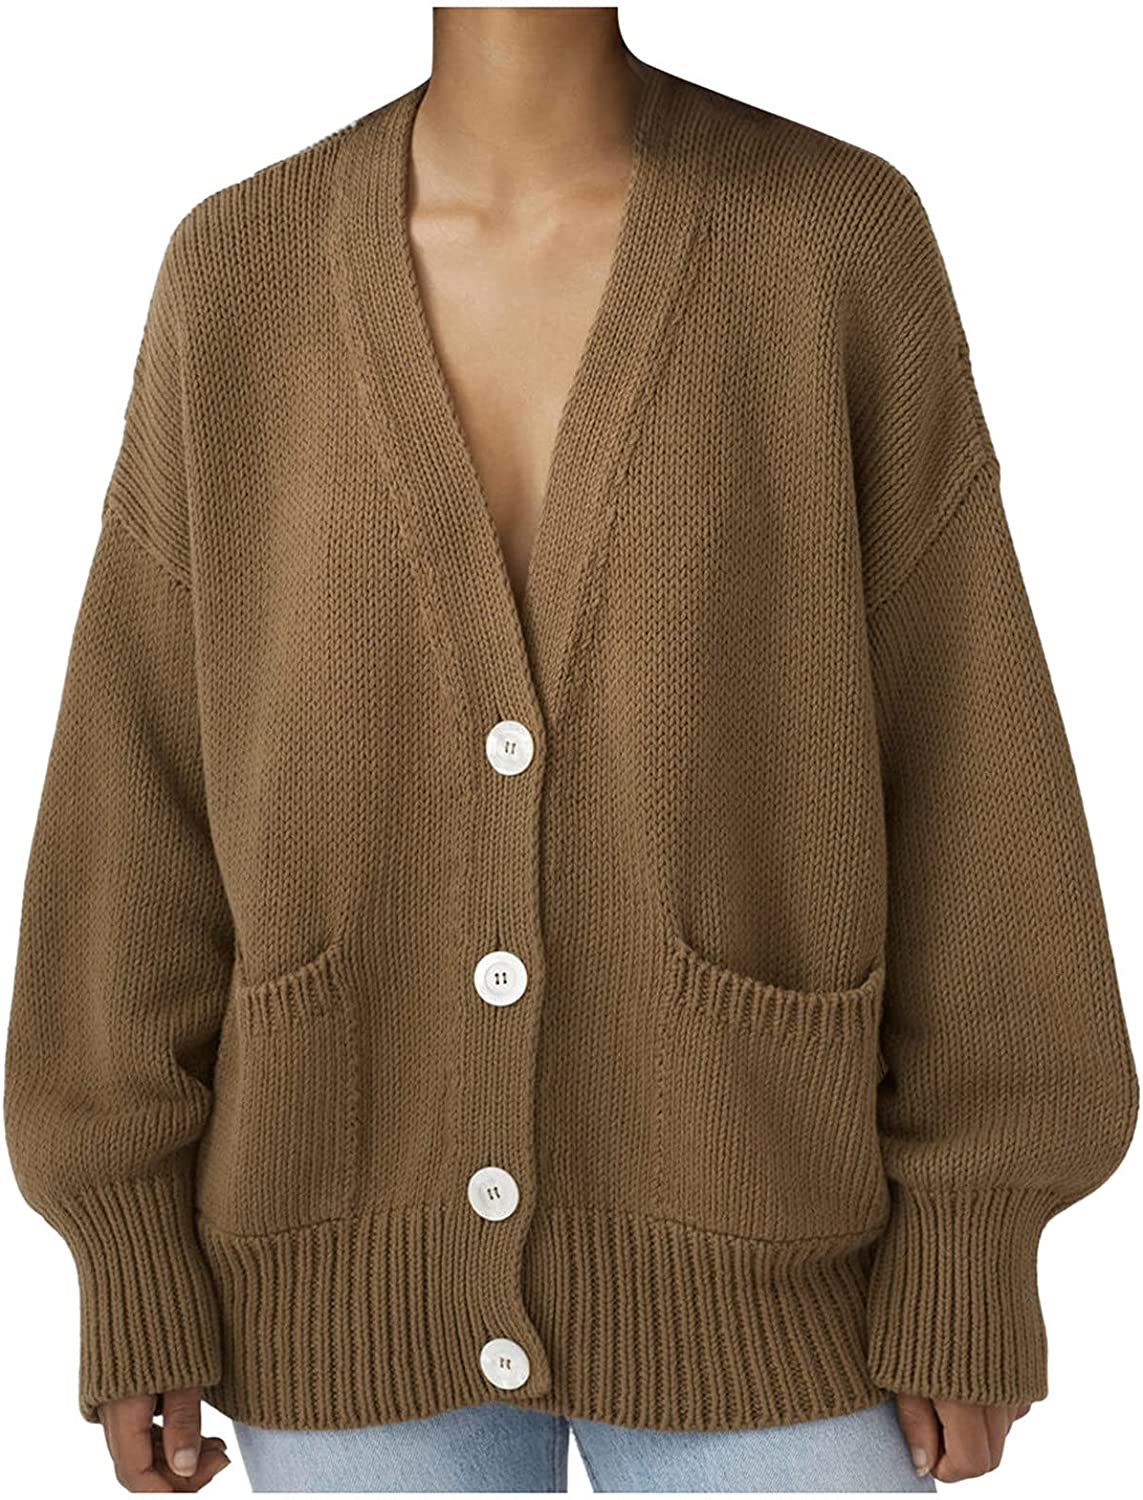 Women's Open Front Knit Cardigan Sweaters Oversized Long Sleeve Button Down V Neck Knitted Sweaters Outerwear with Pockets